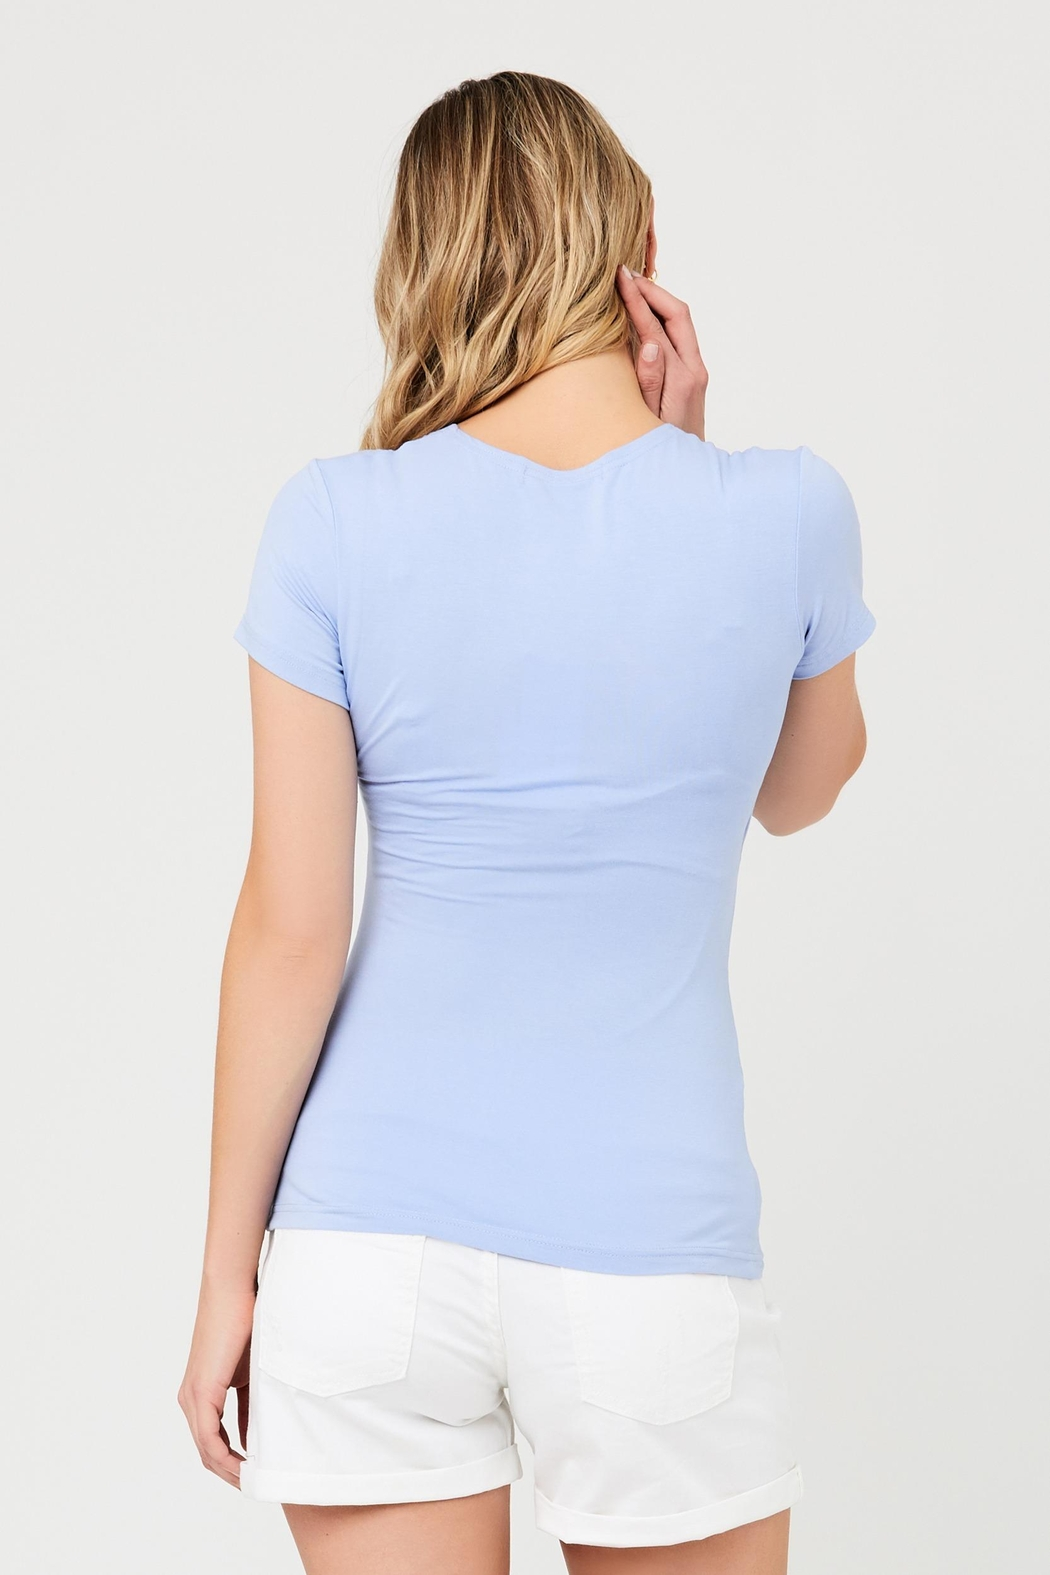 Ripe Maternity Embrace Tee - Bluebell - Side Cropped Image